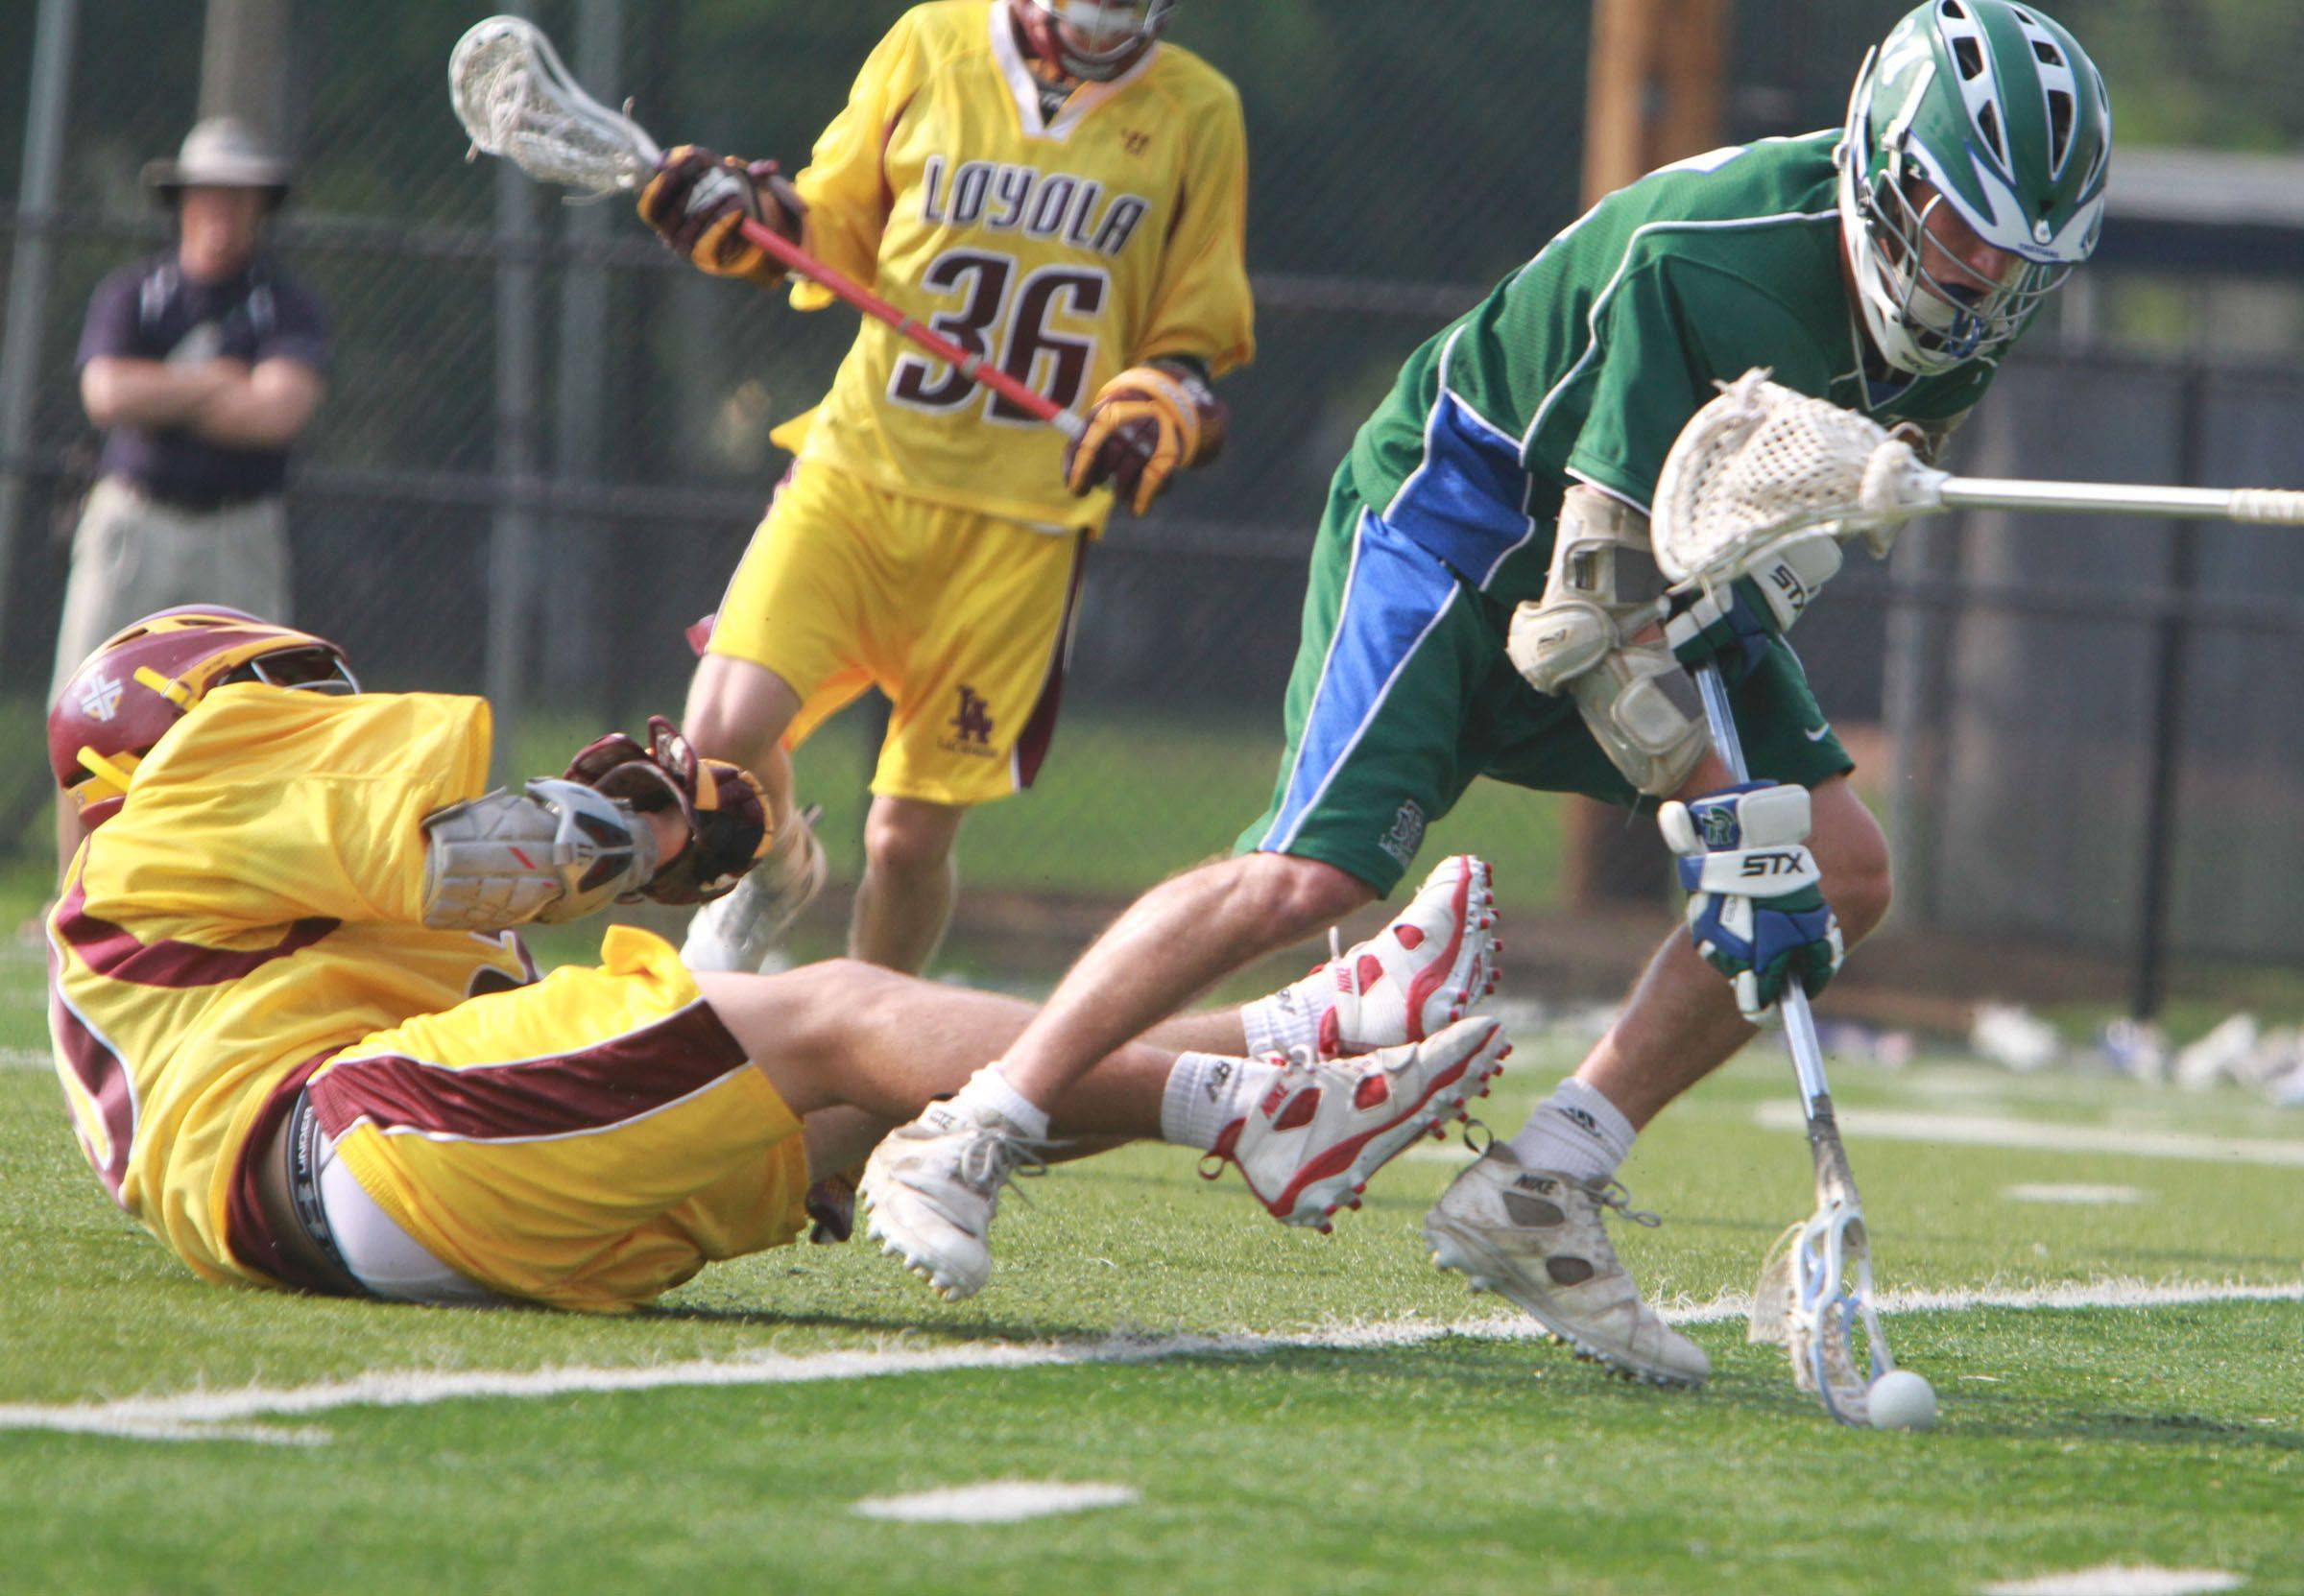 Loyola Academy vs New Trier in IHSLA state lacrosse championship in Oak Park on Saturday.